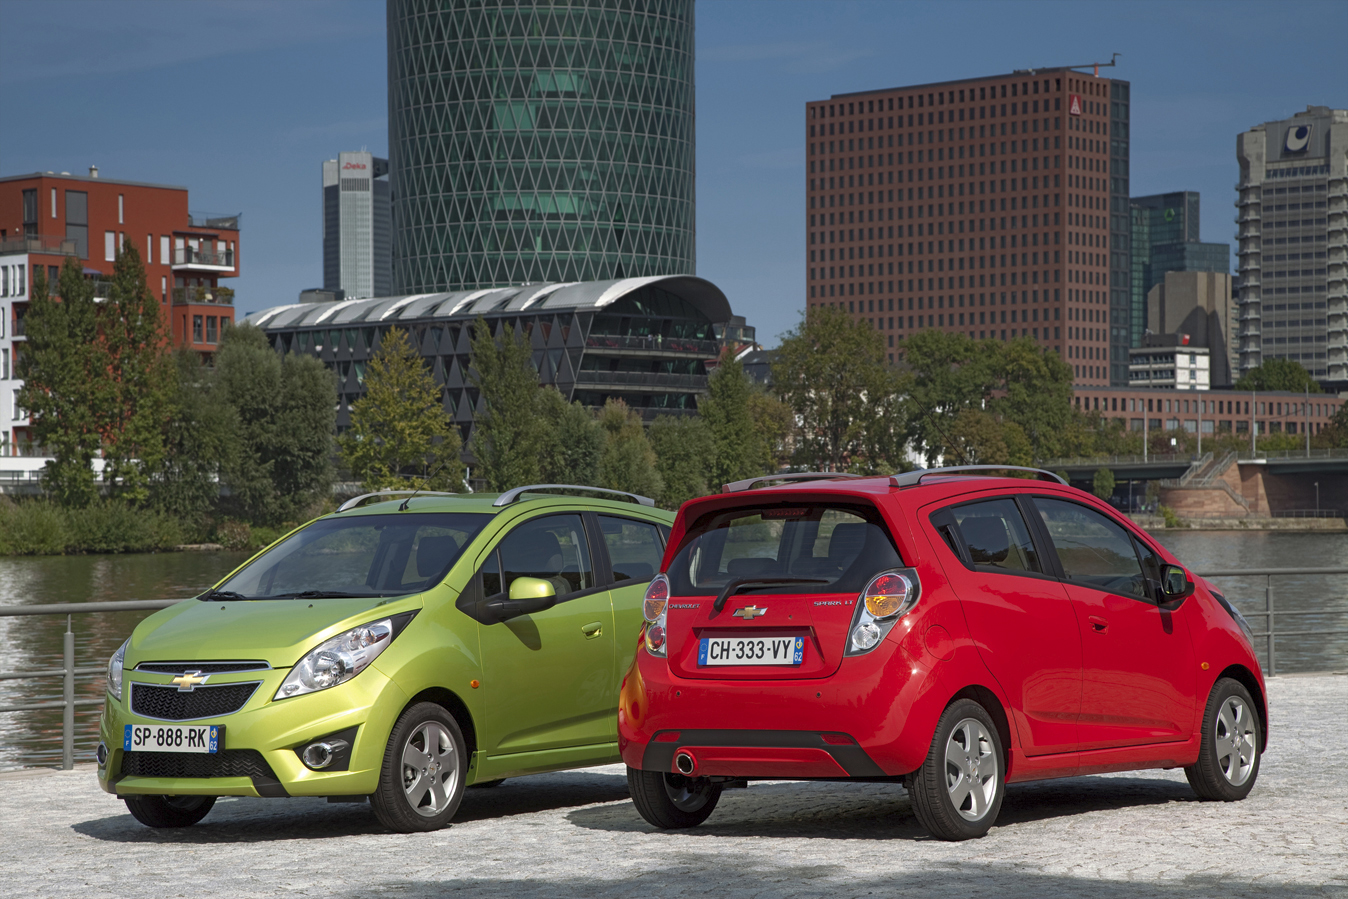 chevrolet wallpaper (Chevrolet Spark)